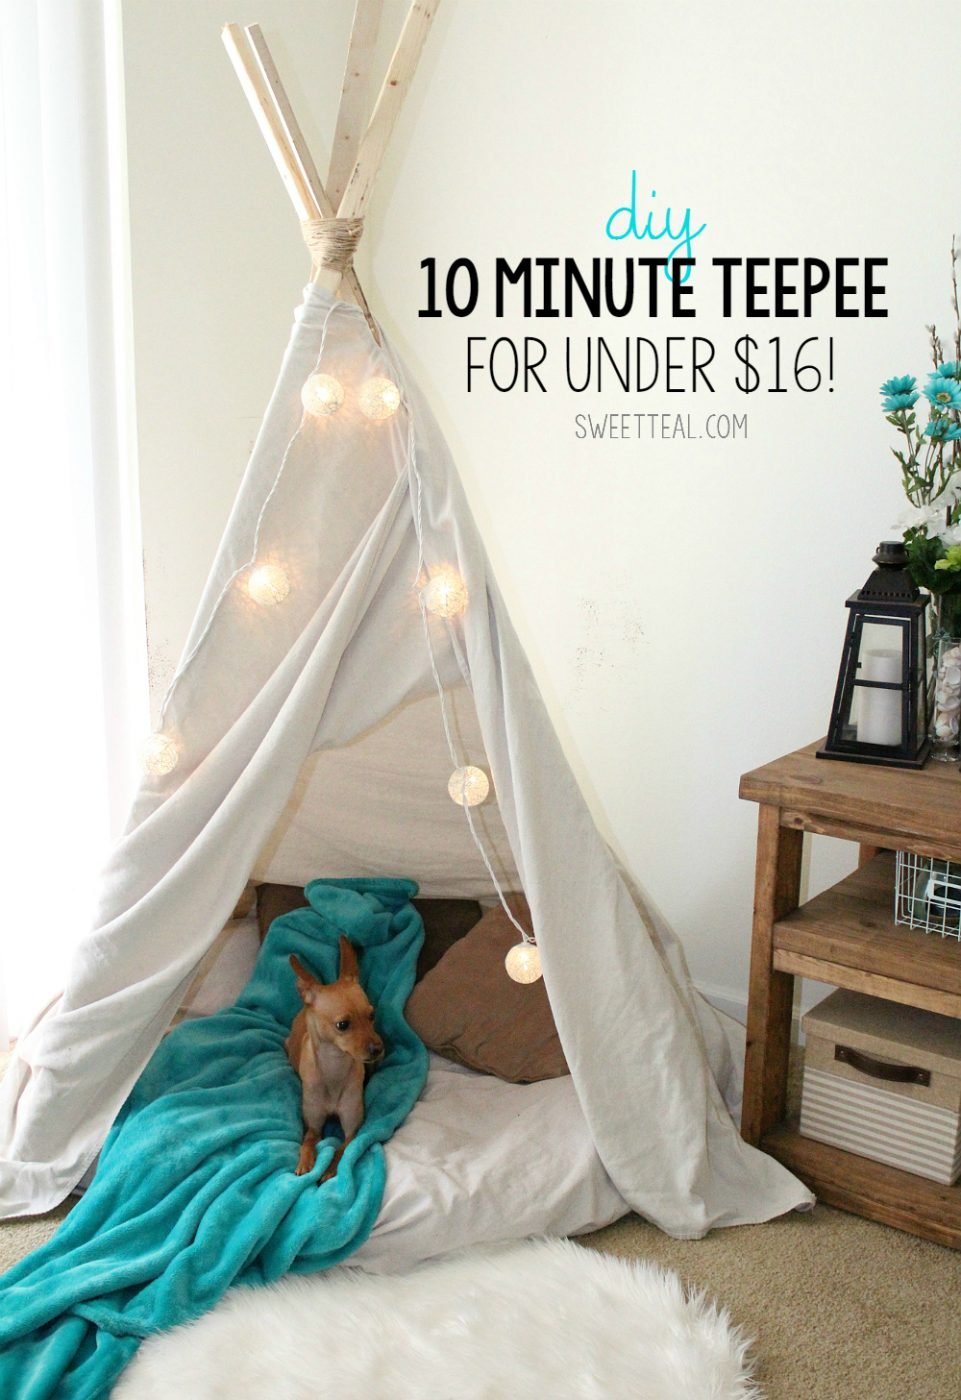 DIY 10 Minute Teepee